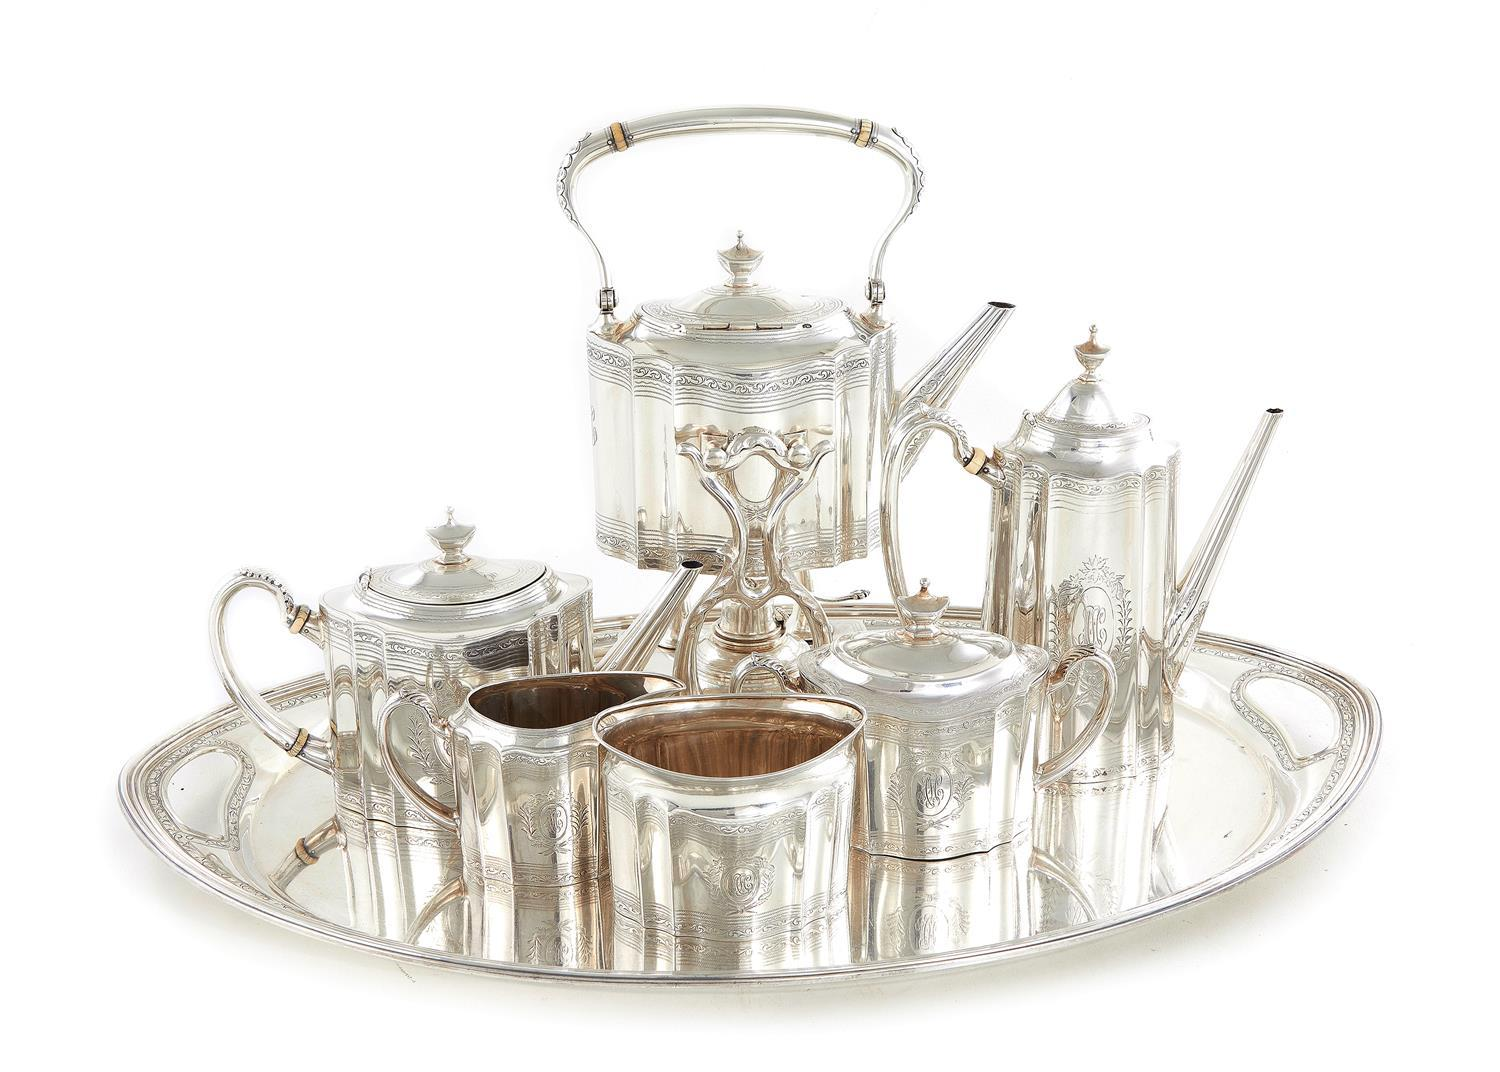 Tiffany & Co silver tea and coffee service (7pcs)